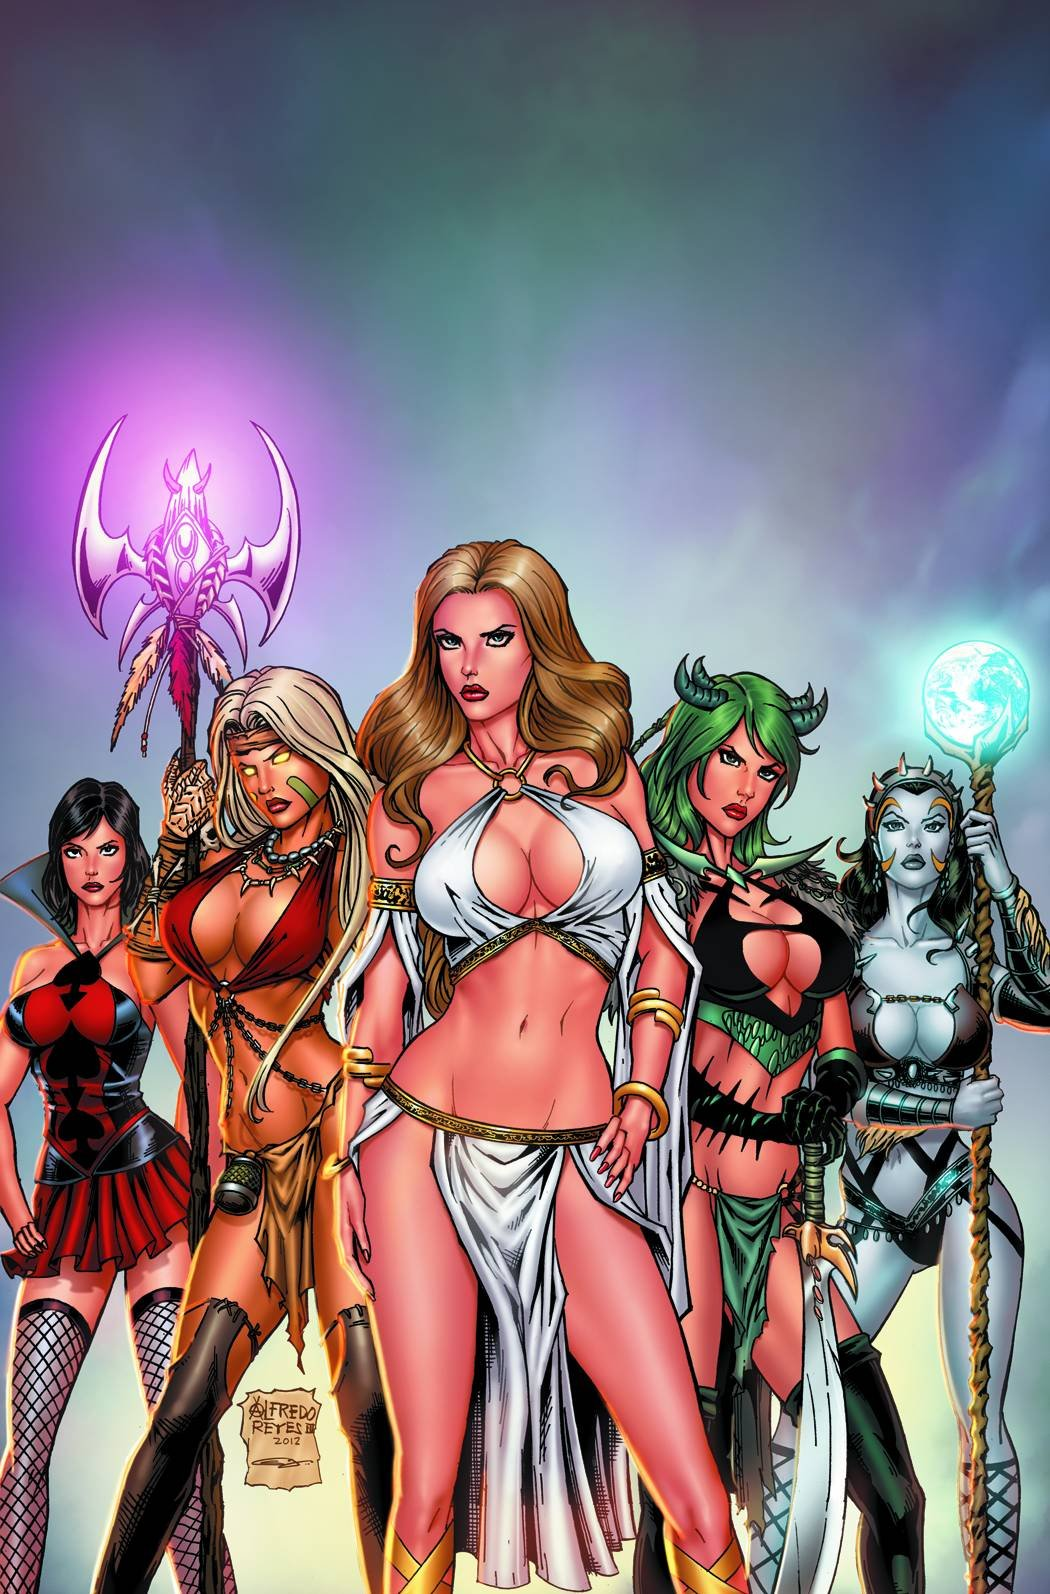 Grimm Fairy Tales: Bad Girls (Grimm Fairy Tales Presents